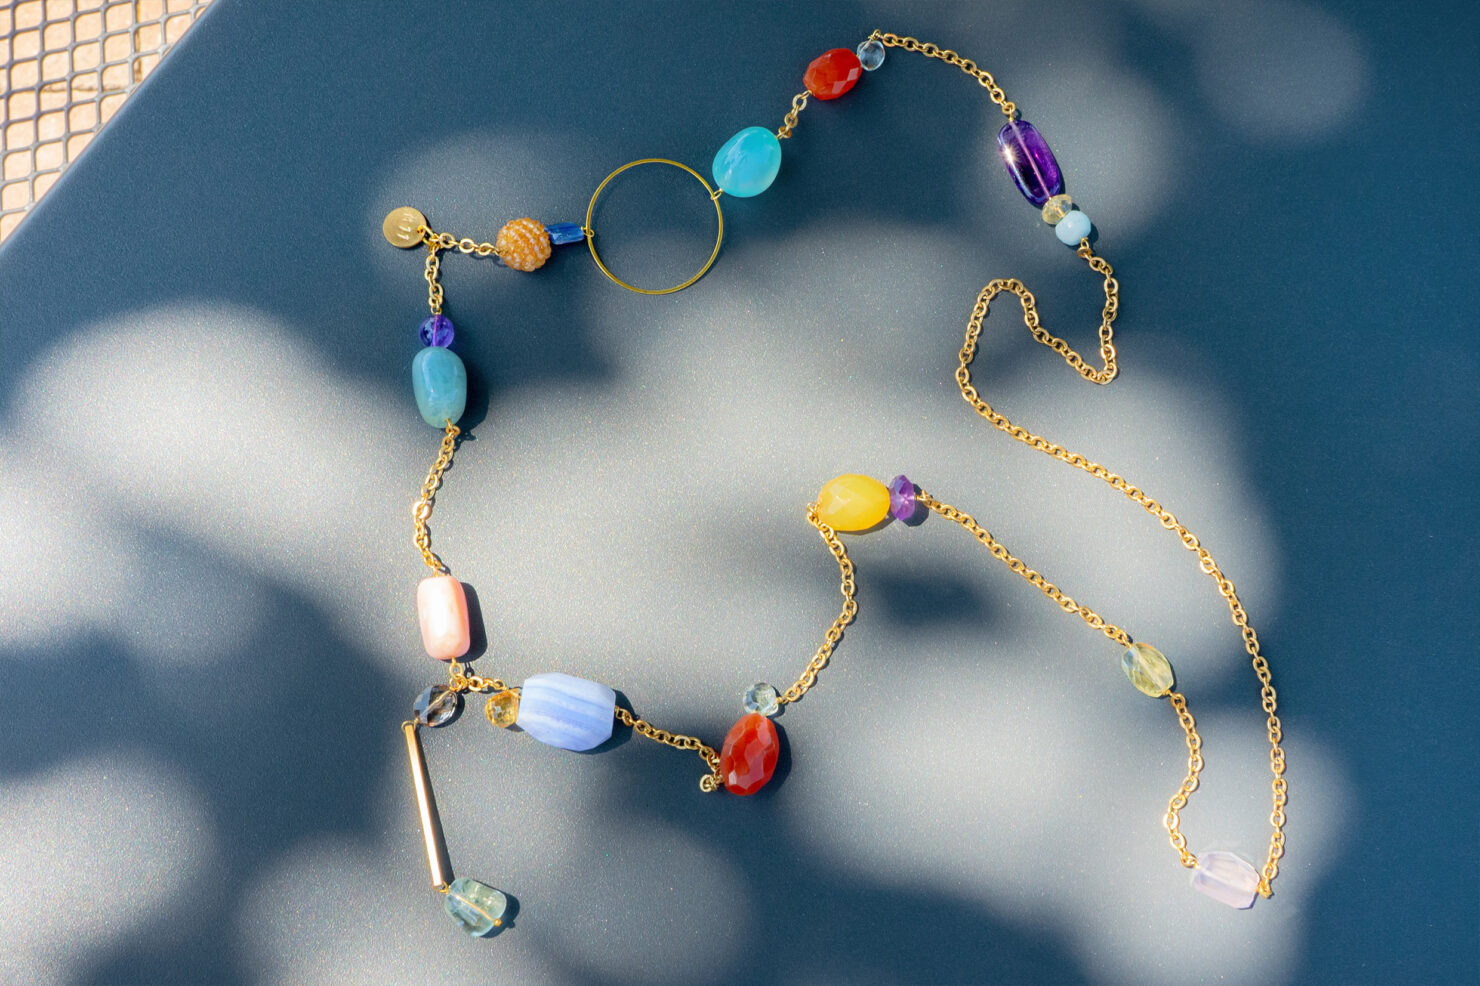 LONG NECKLACE GOLDEN BRASS AND SEMIPRECIOUS STONES 100/105 CM - M11SHOP